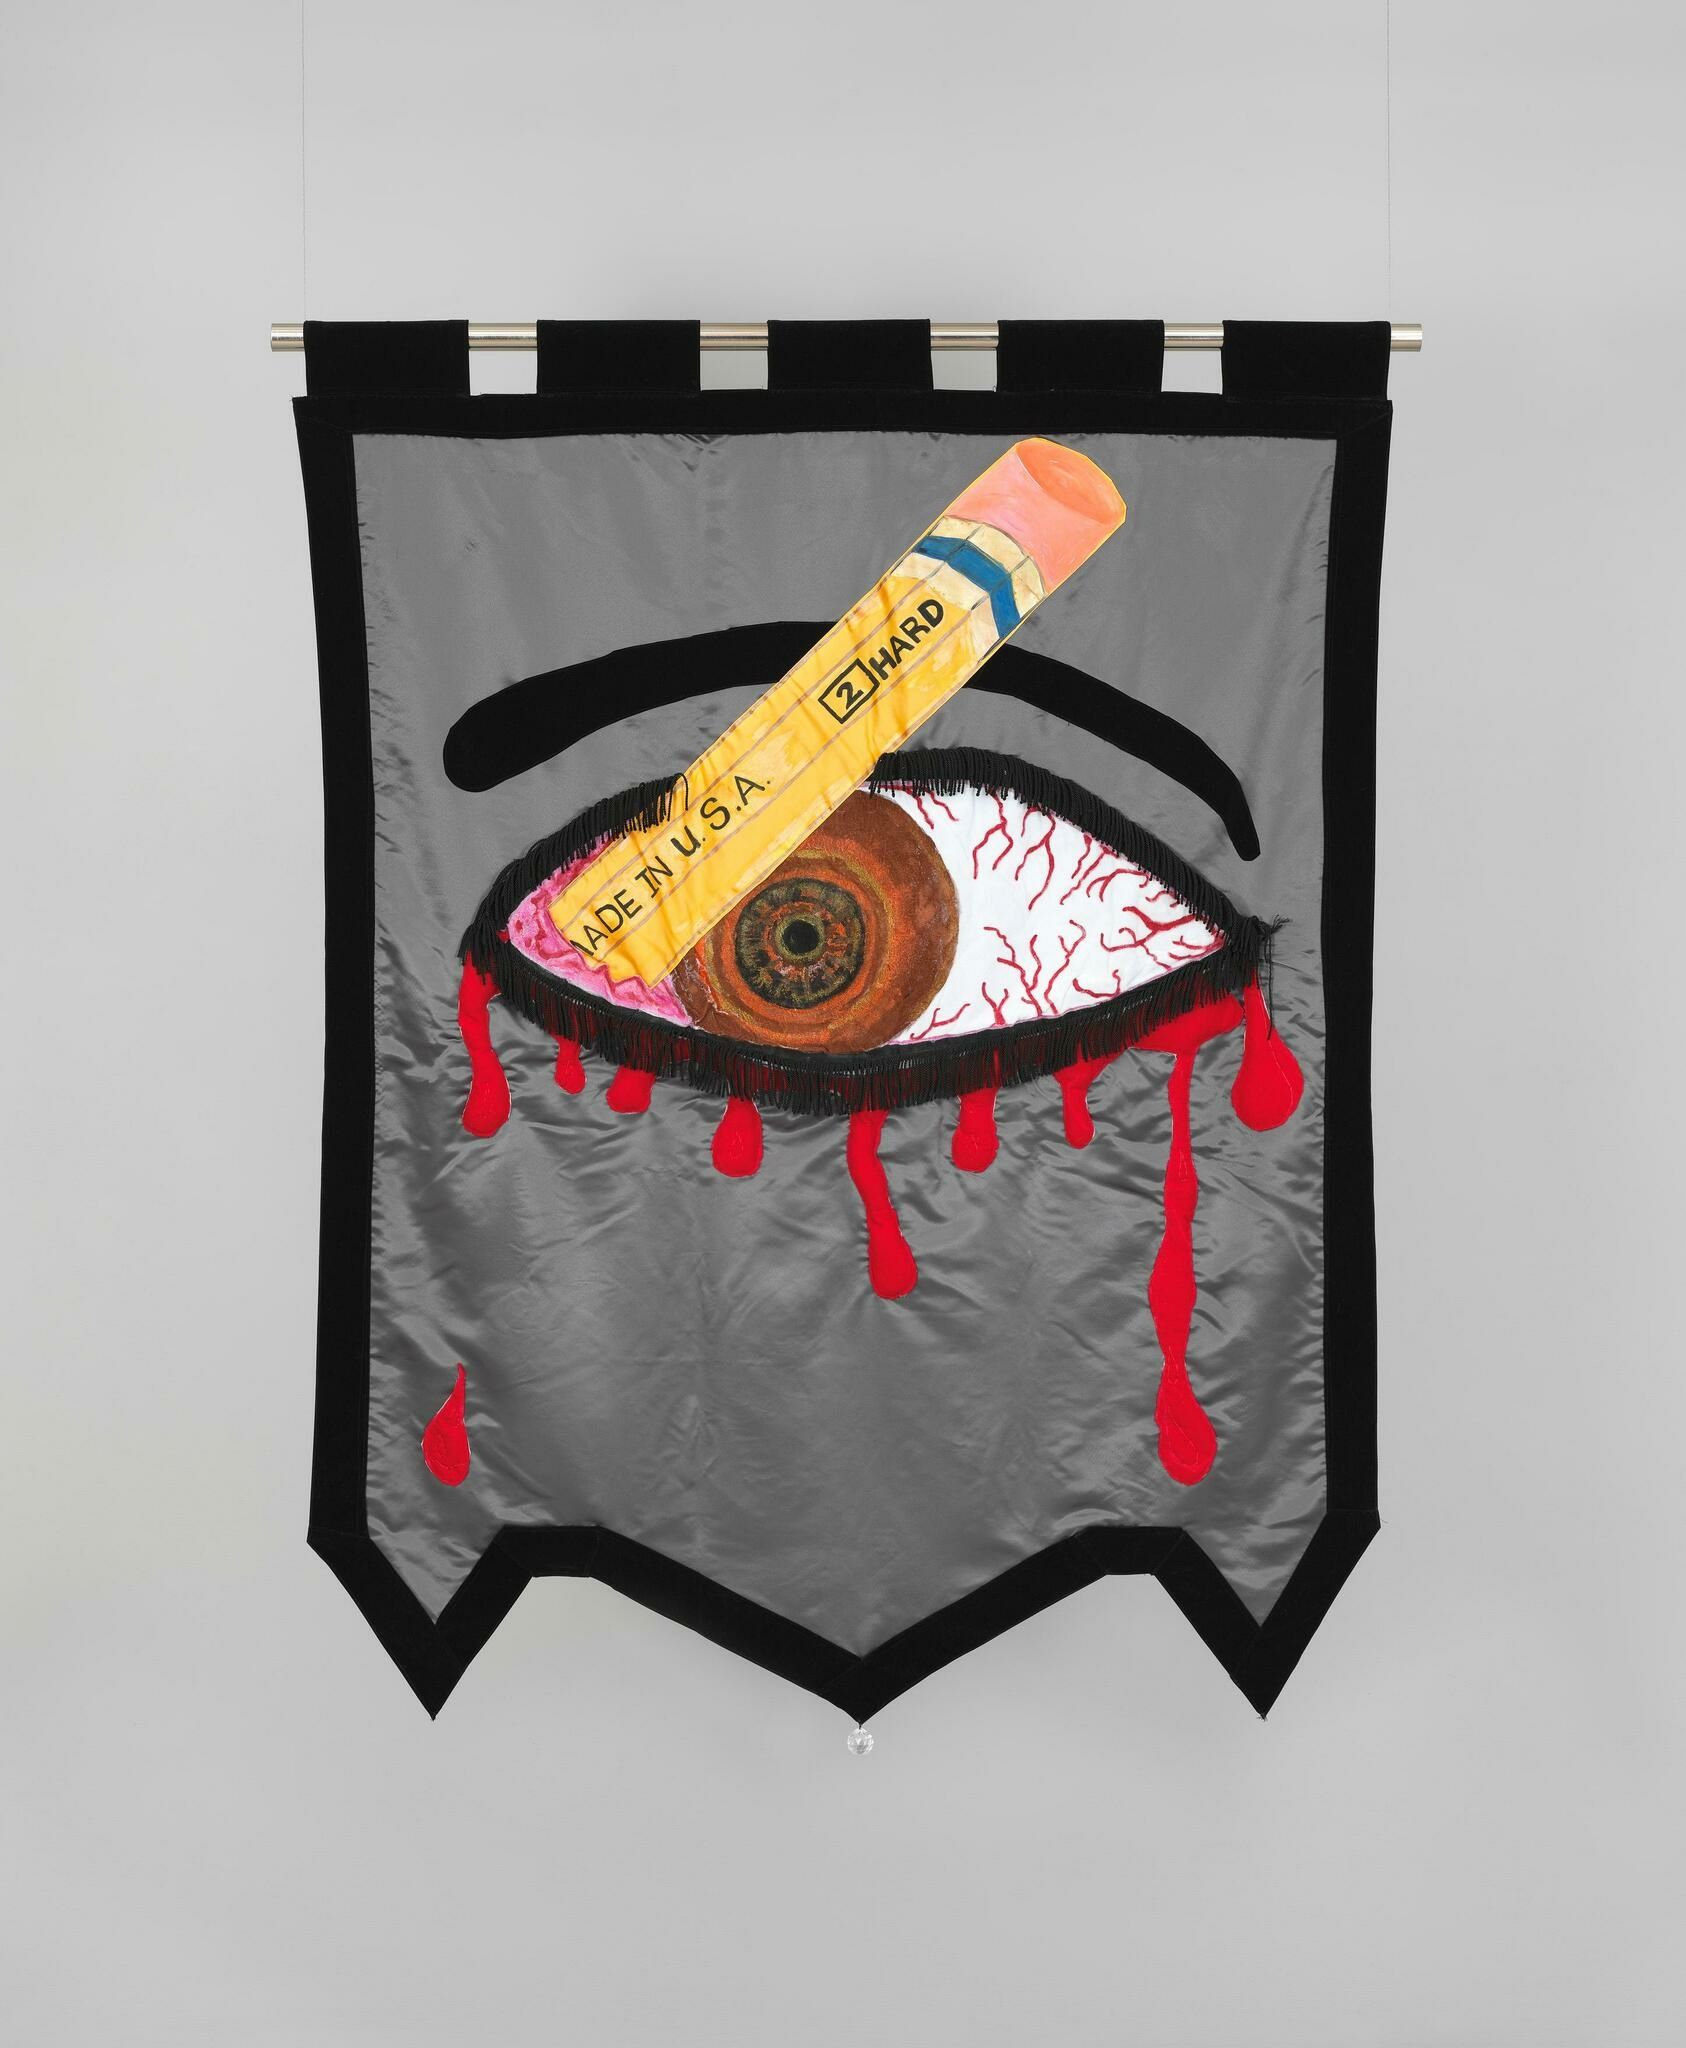 A sewn banner with a bloody brown eye stabbed by a number two pencil against a grey background.